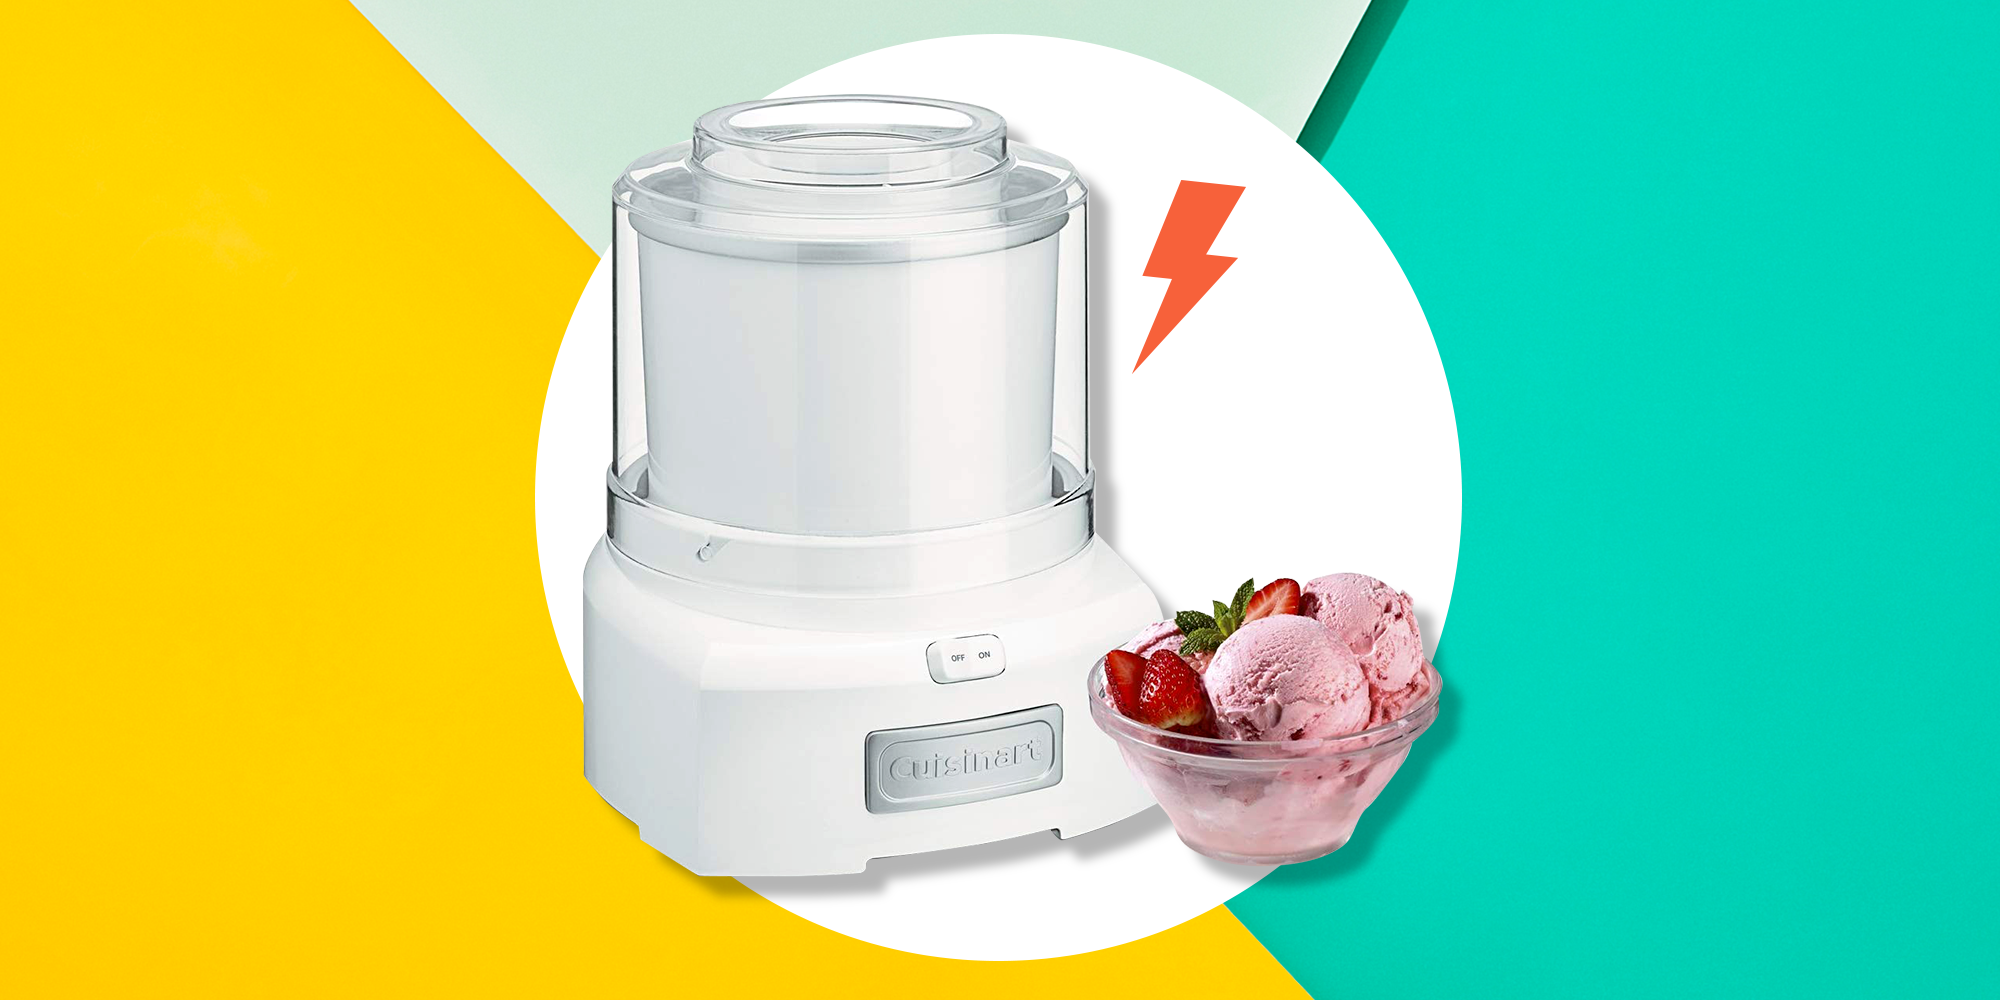 This Cuisinart Frozen Yogurt Ice Cream Maker Is Keto-Approved And Has 5,000 Positive Amazon Reviews